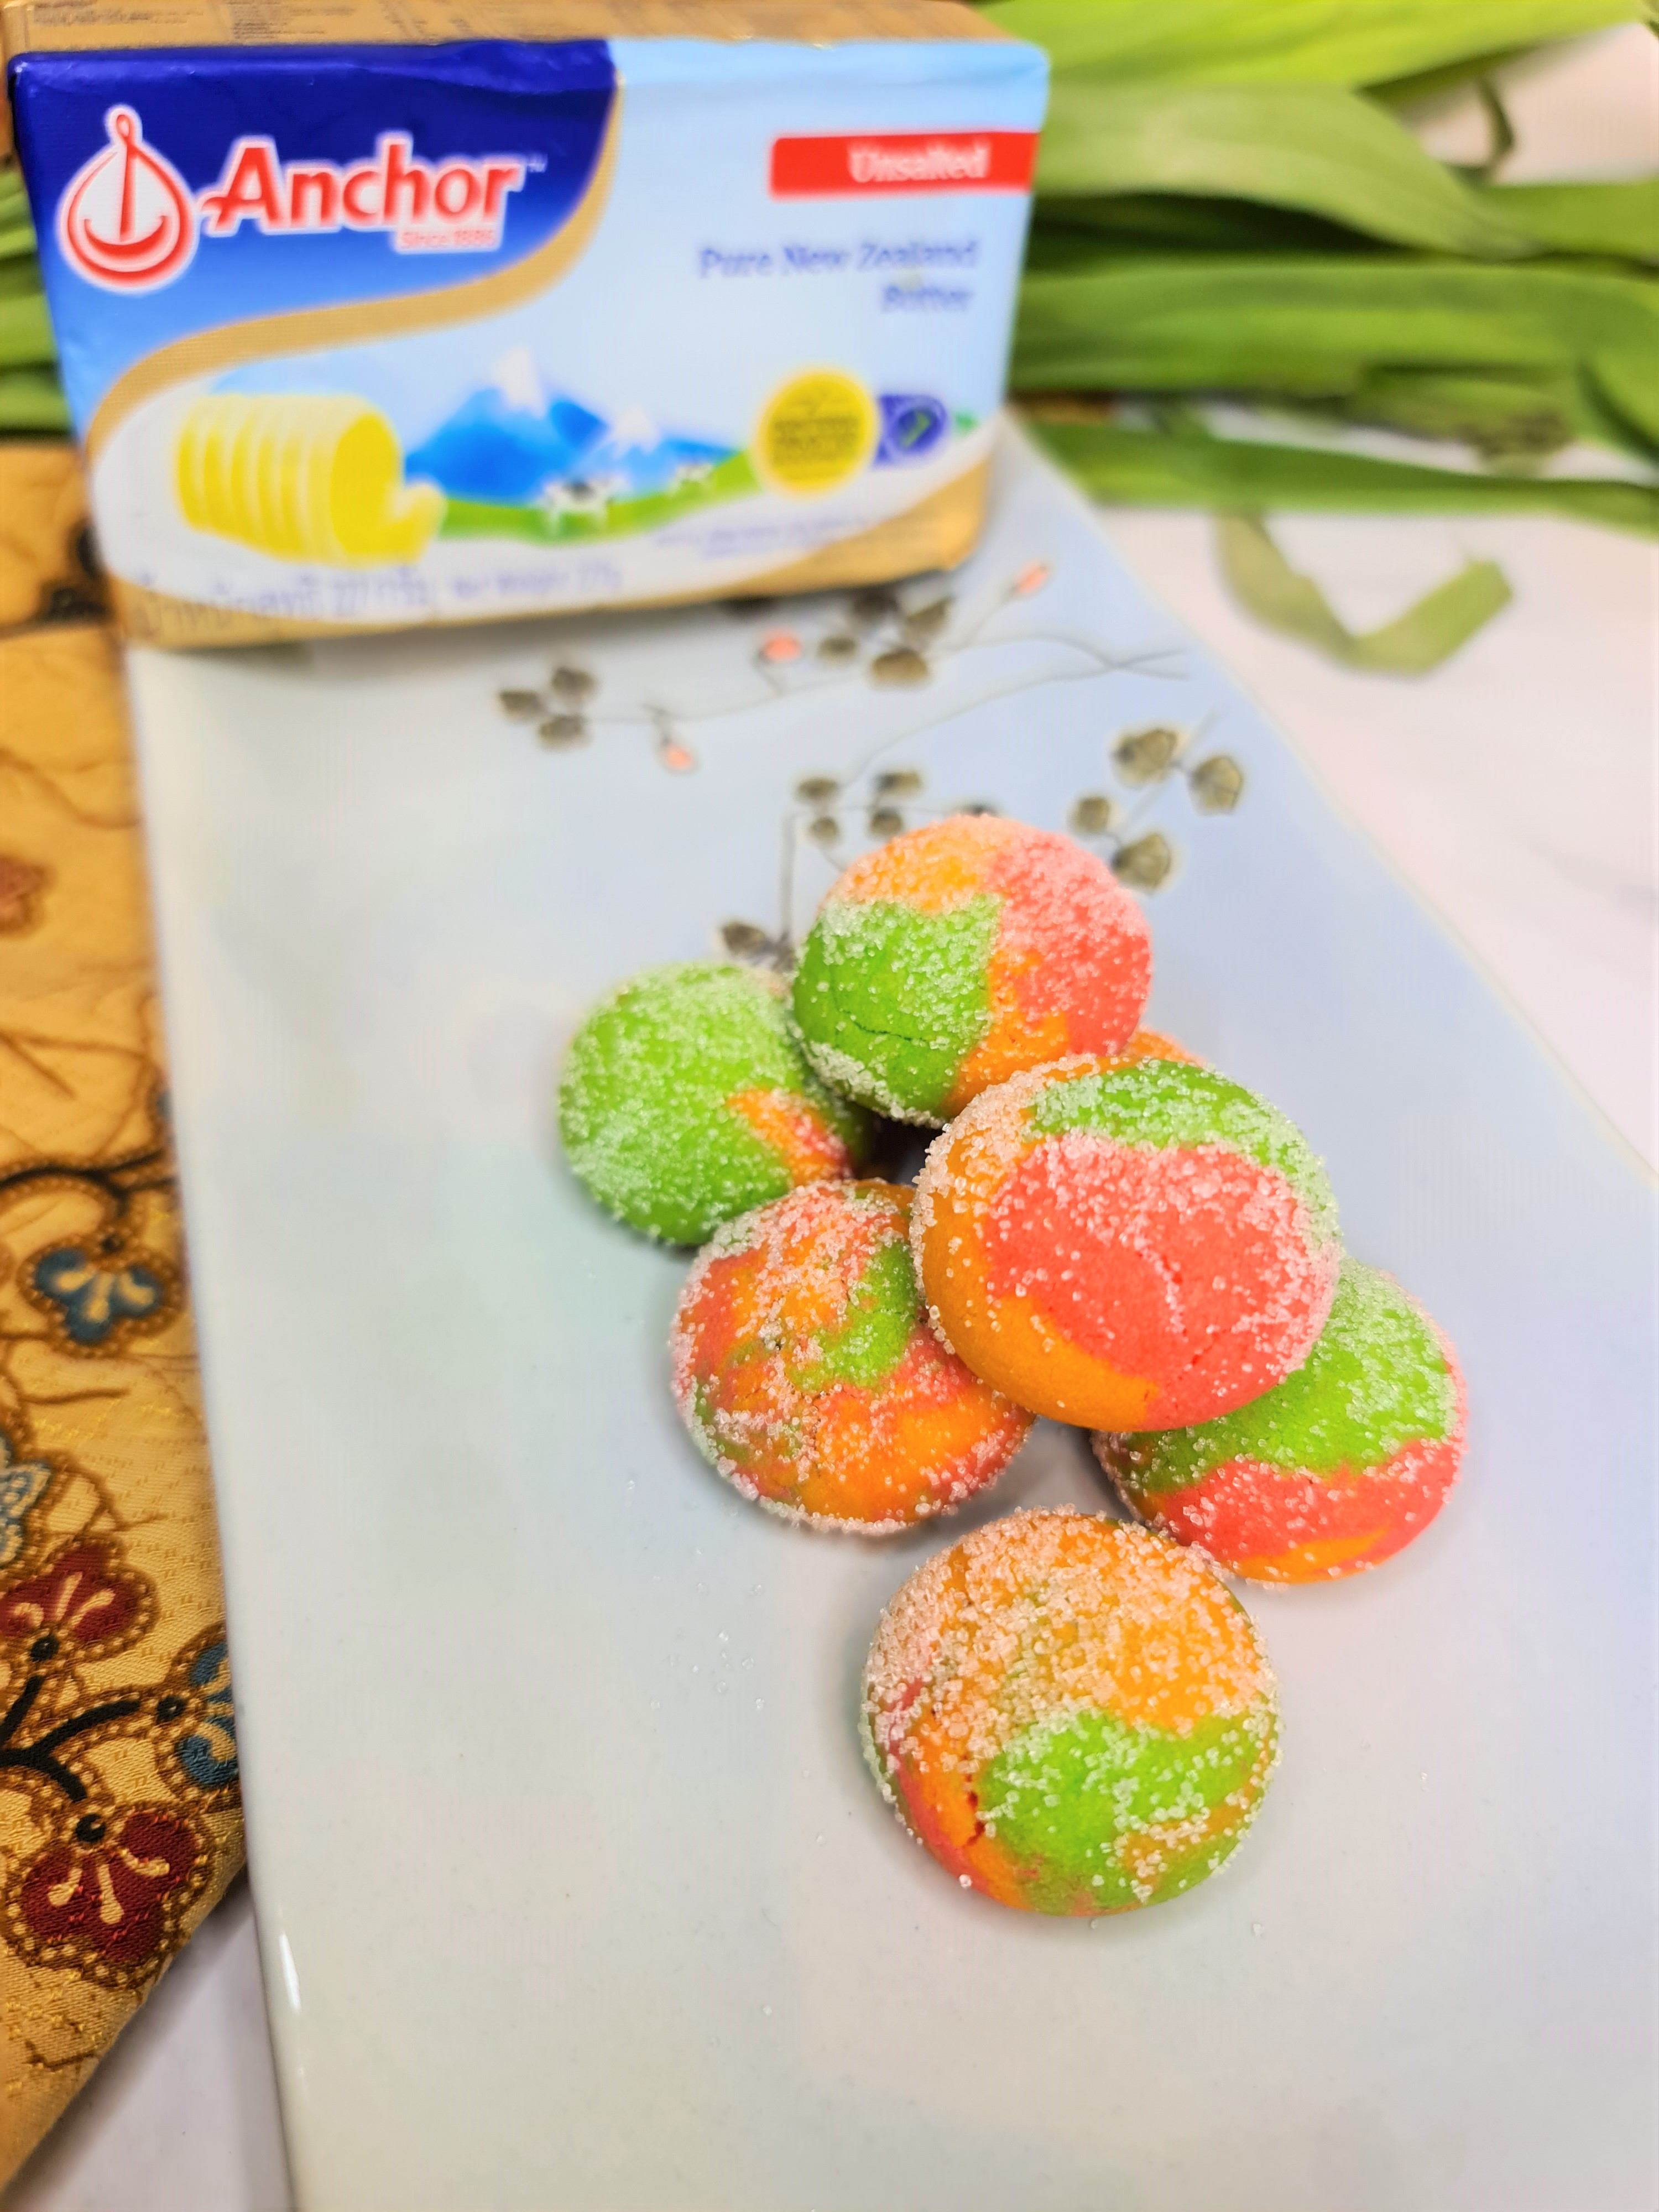 Crystal-Almond-Cookies_Anchor-Dairy